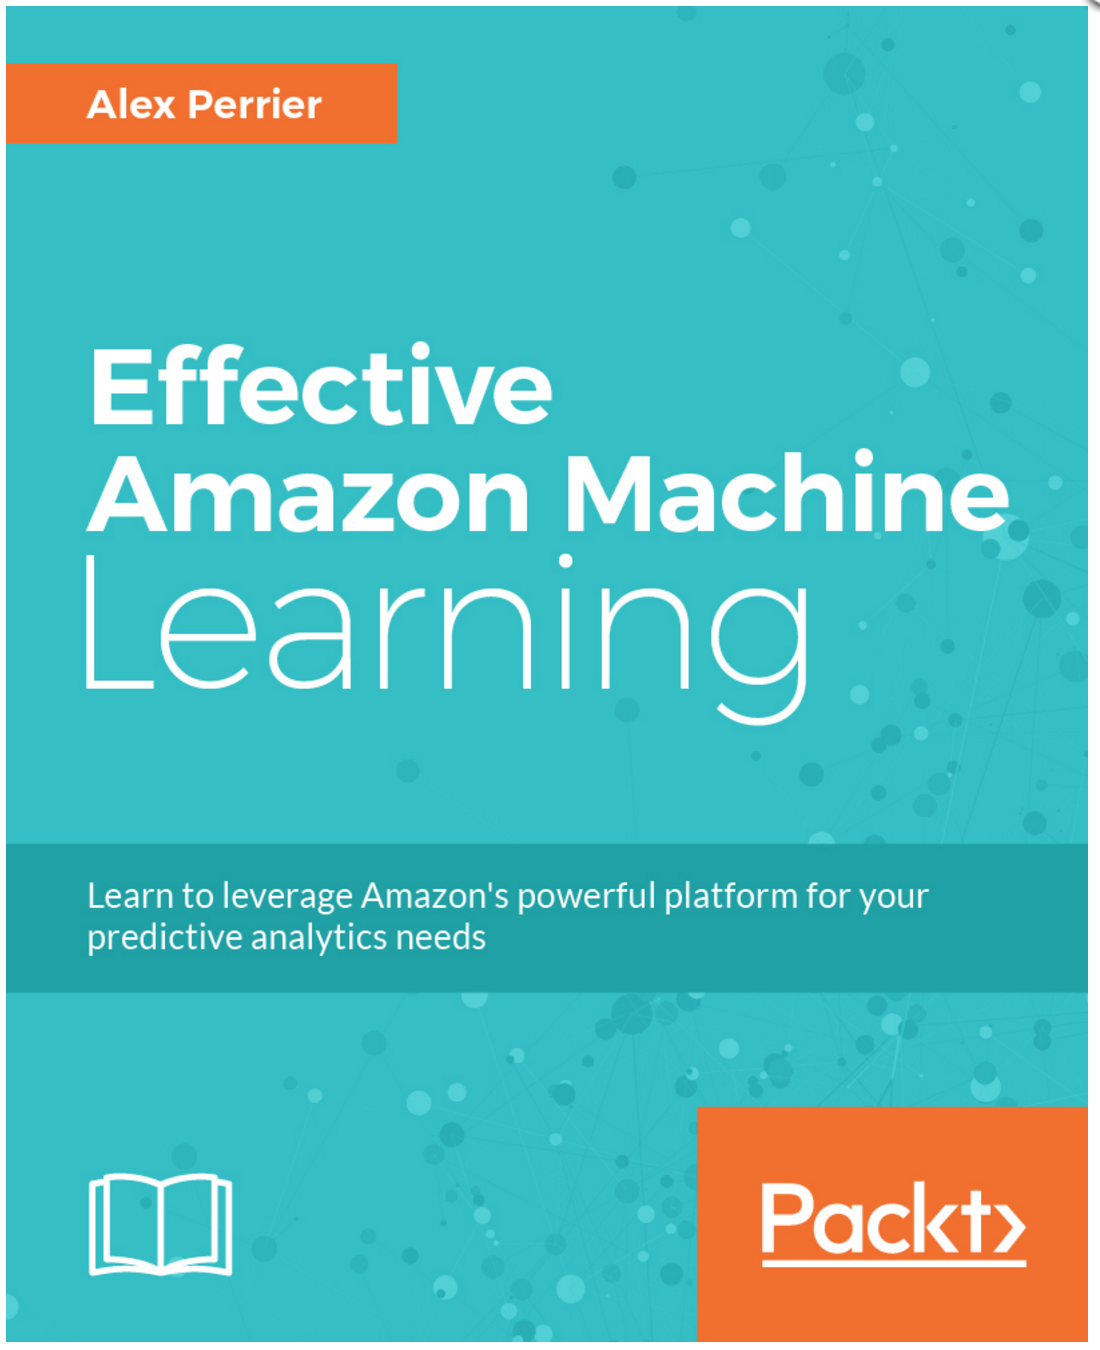 Effective Amazon Machine Learning Book Cover